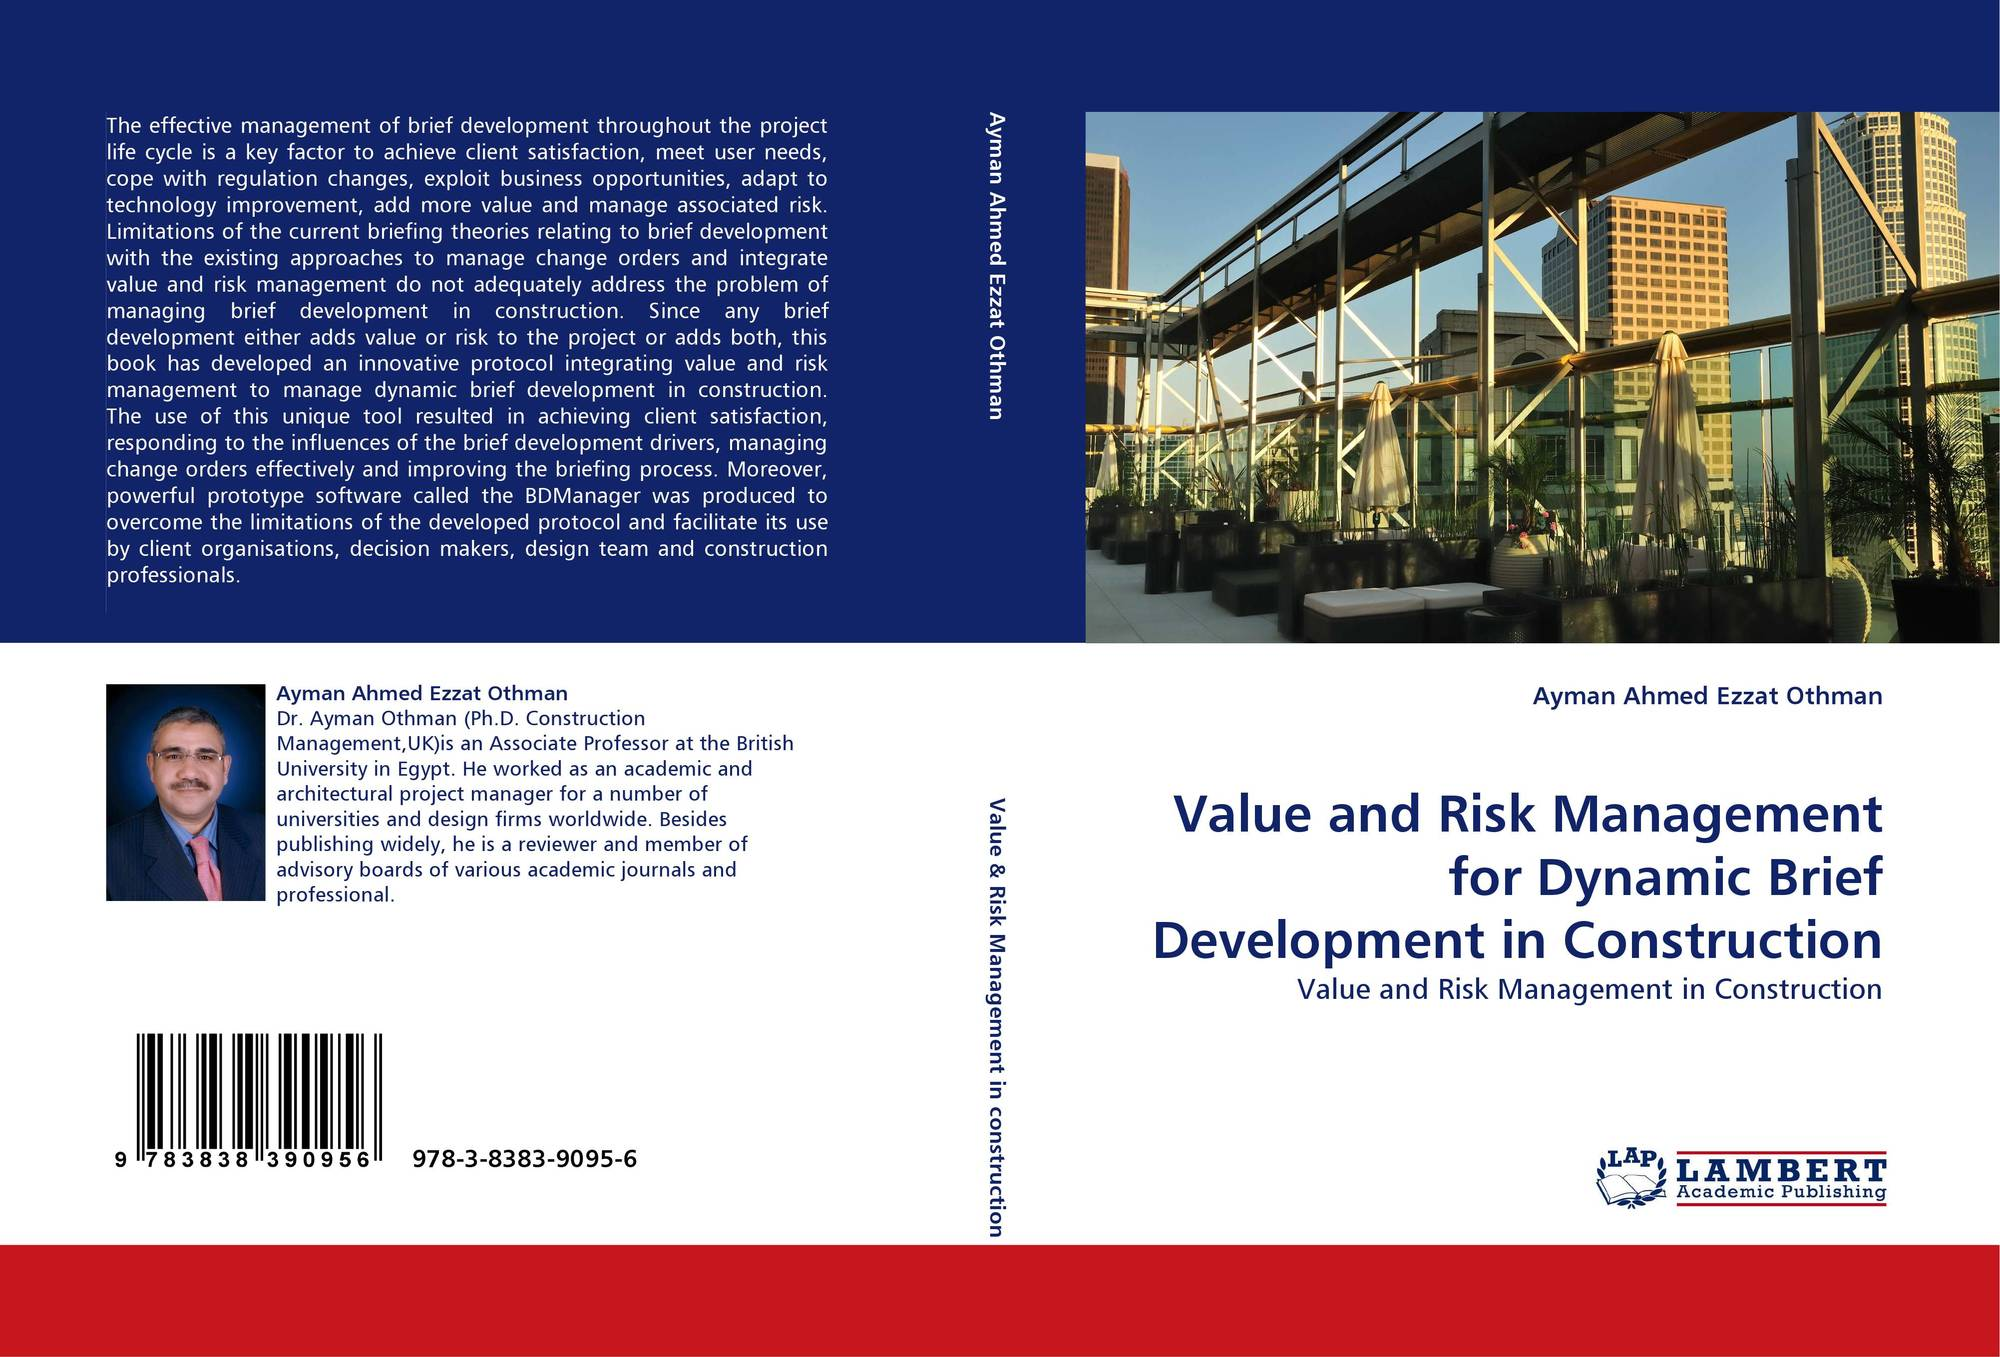 value and risk management in construction essay Focusing on value management and the delivery of value - risk management  papers and - the international construction project management essay writing.